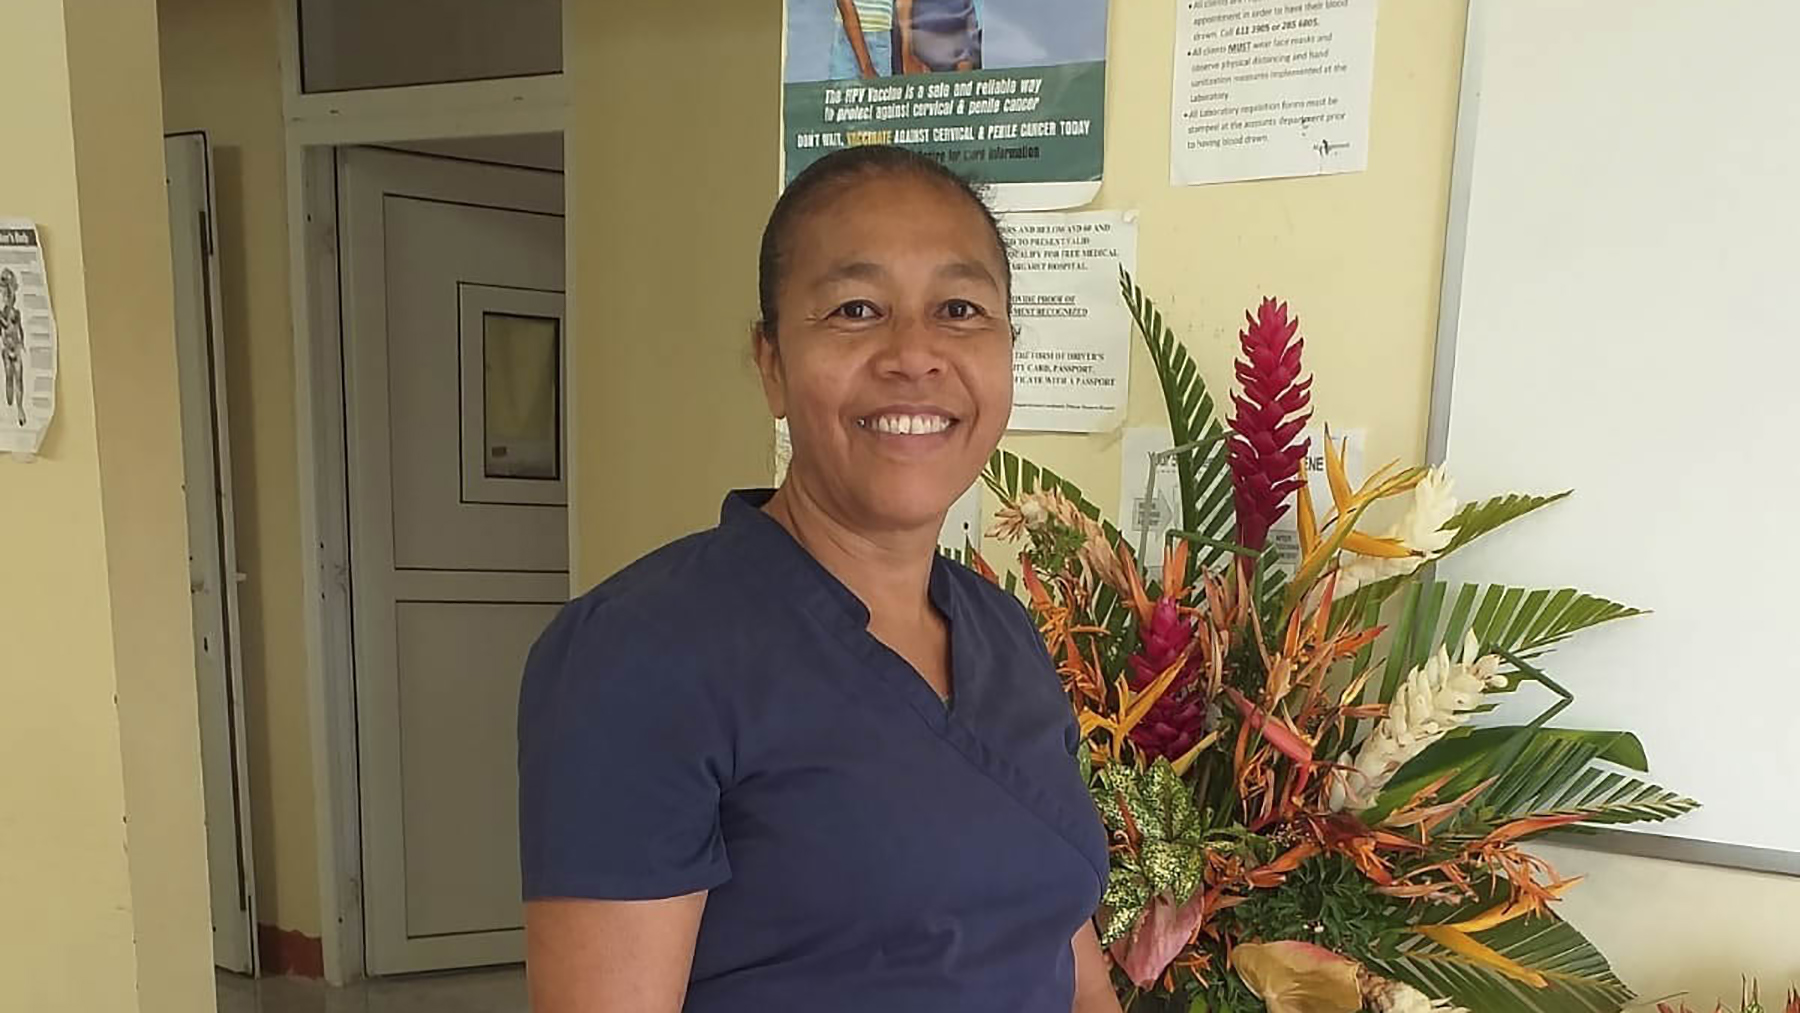 Nurse Joseph at the newly equipped and furnished Salybia Clinic in the Kalinago Territory of Dominica. (Photo courtesy of Medical Professionals on a Mission)